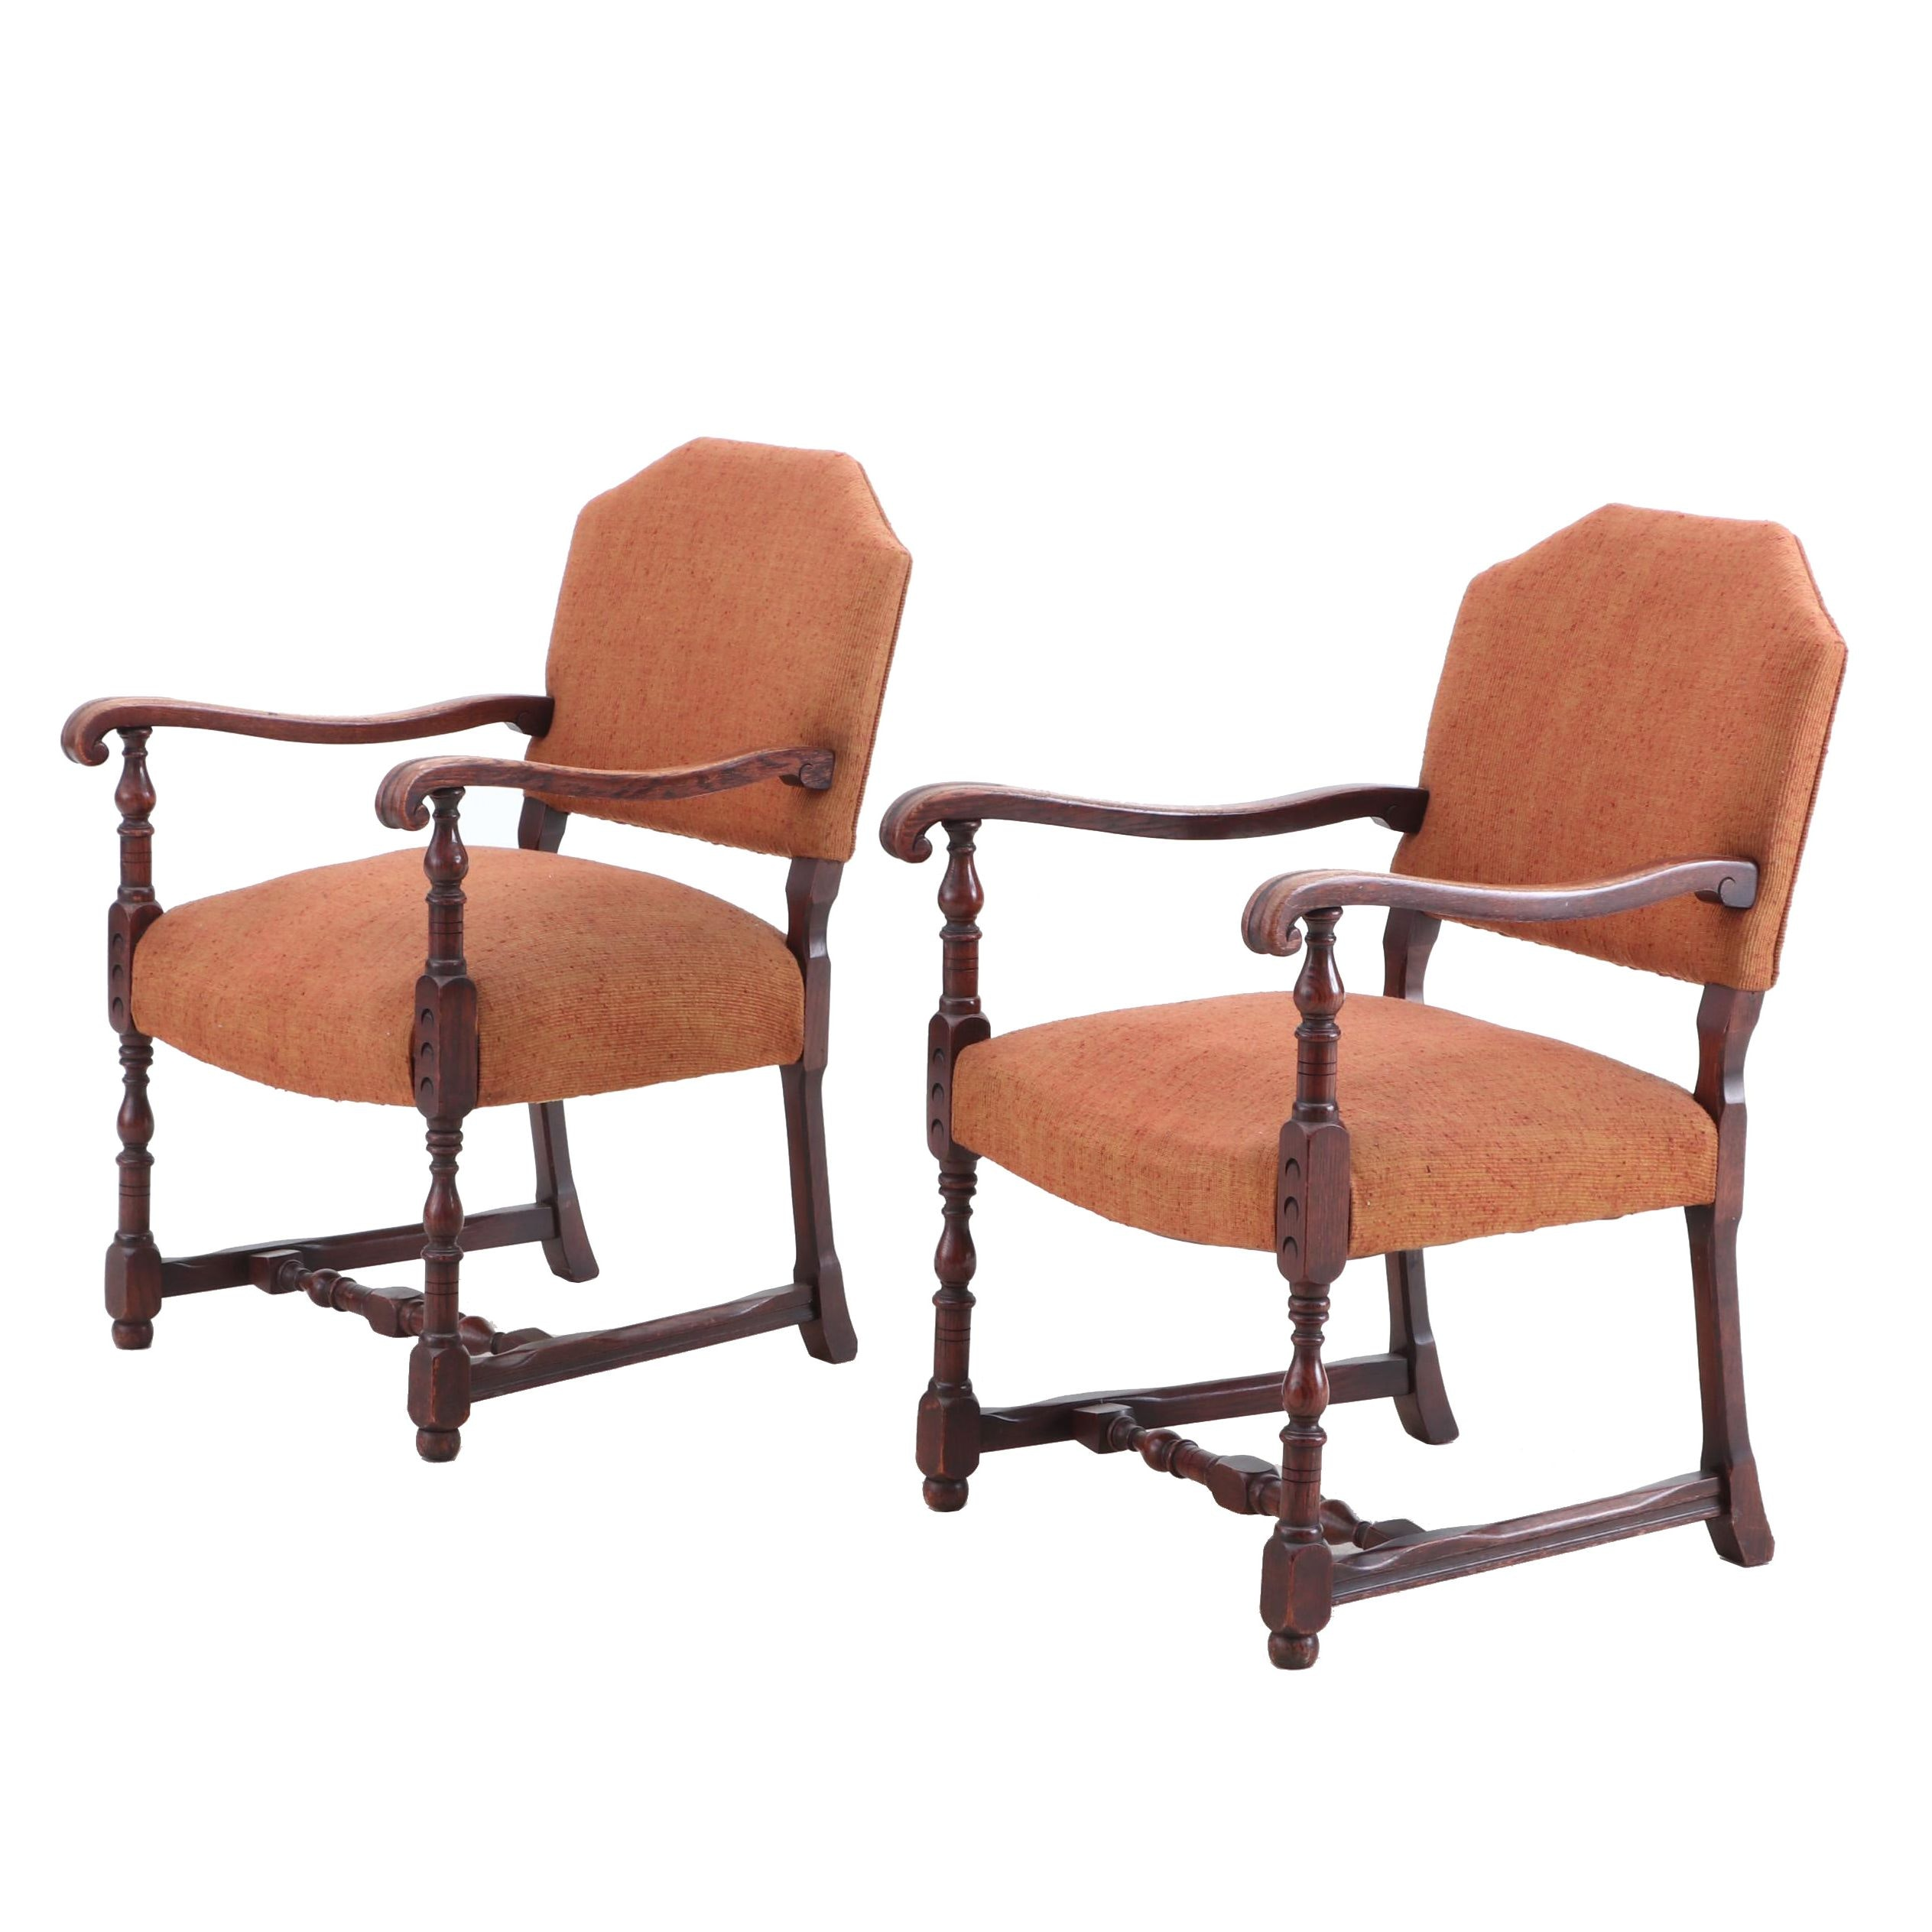 Baroque Style Upholstered Arm Chairs, Contemporary